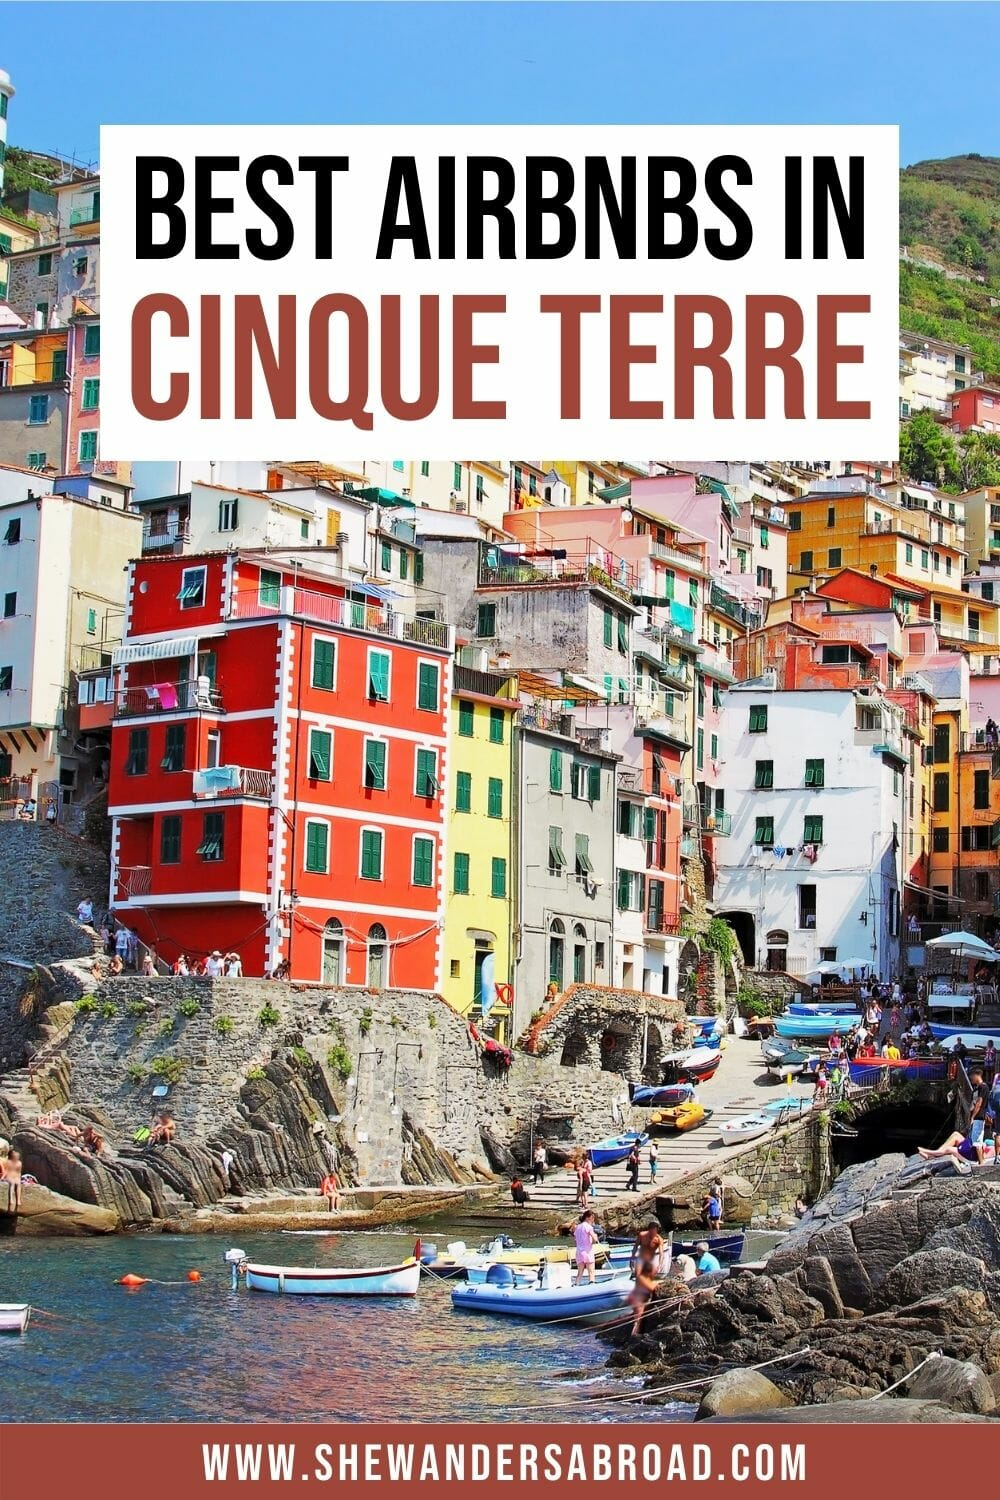 Best Airbnbs in Cinque Terre, Italy